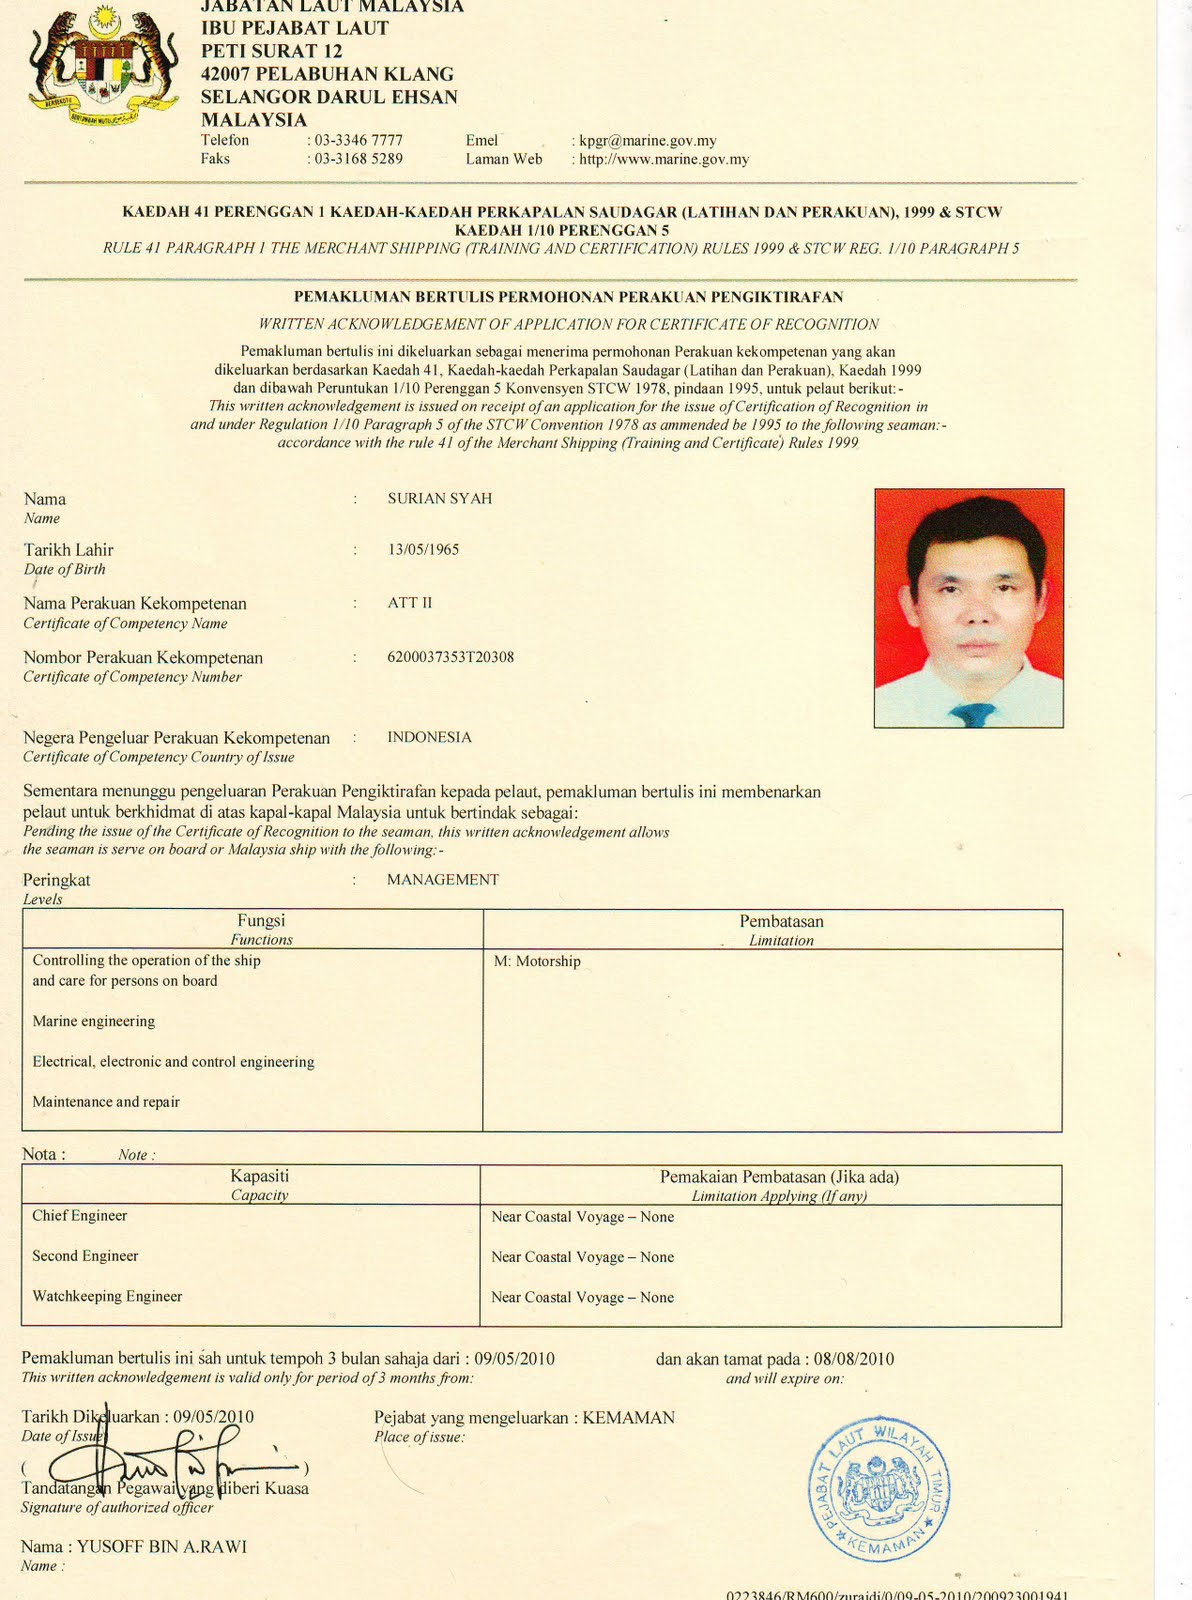 Cv Surian Syah Malaysia Written Acknowledgement Of Application For Certificate Of Recognition